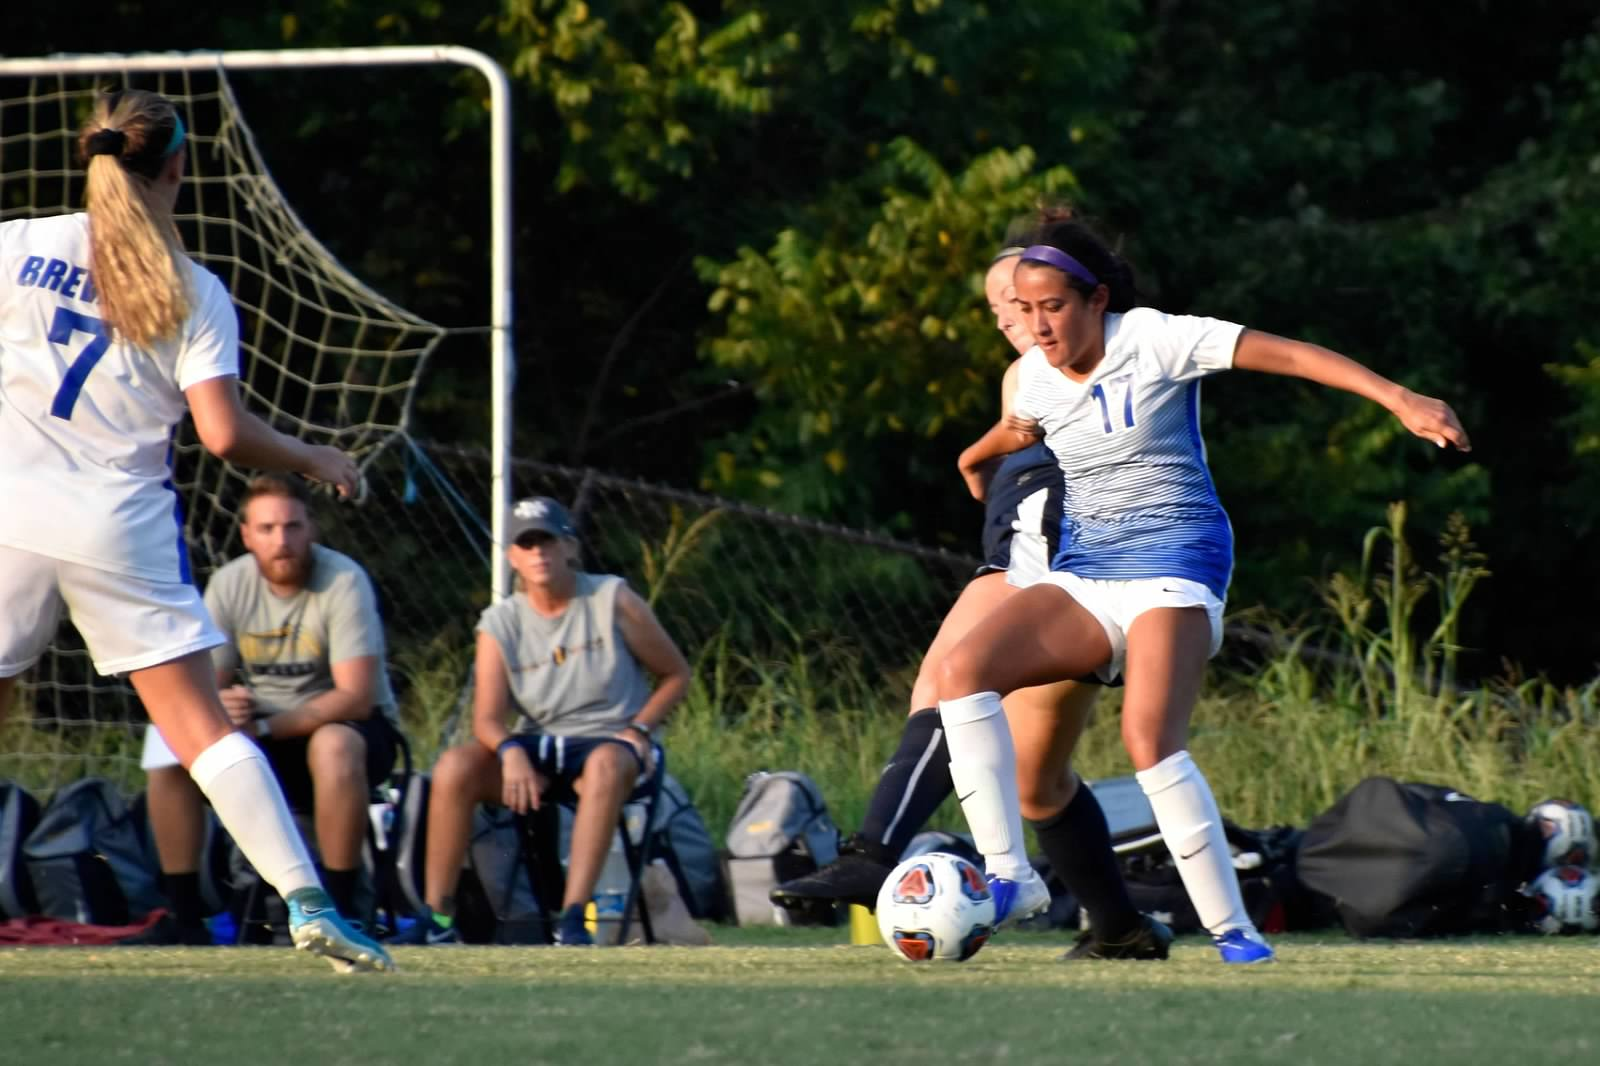 Freshman midfielder Brianna Link's game-winning golden goal in overtime pushes the Tornados past the Wildcats (Courtesy of John Innis).